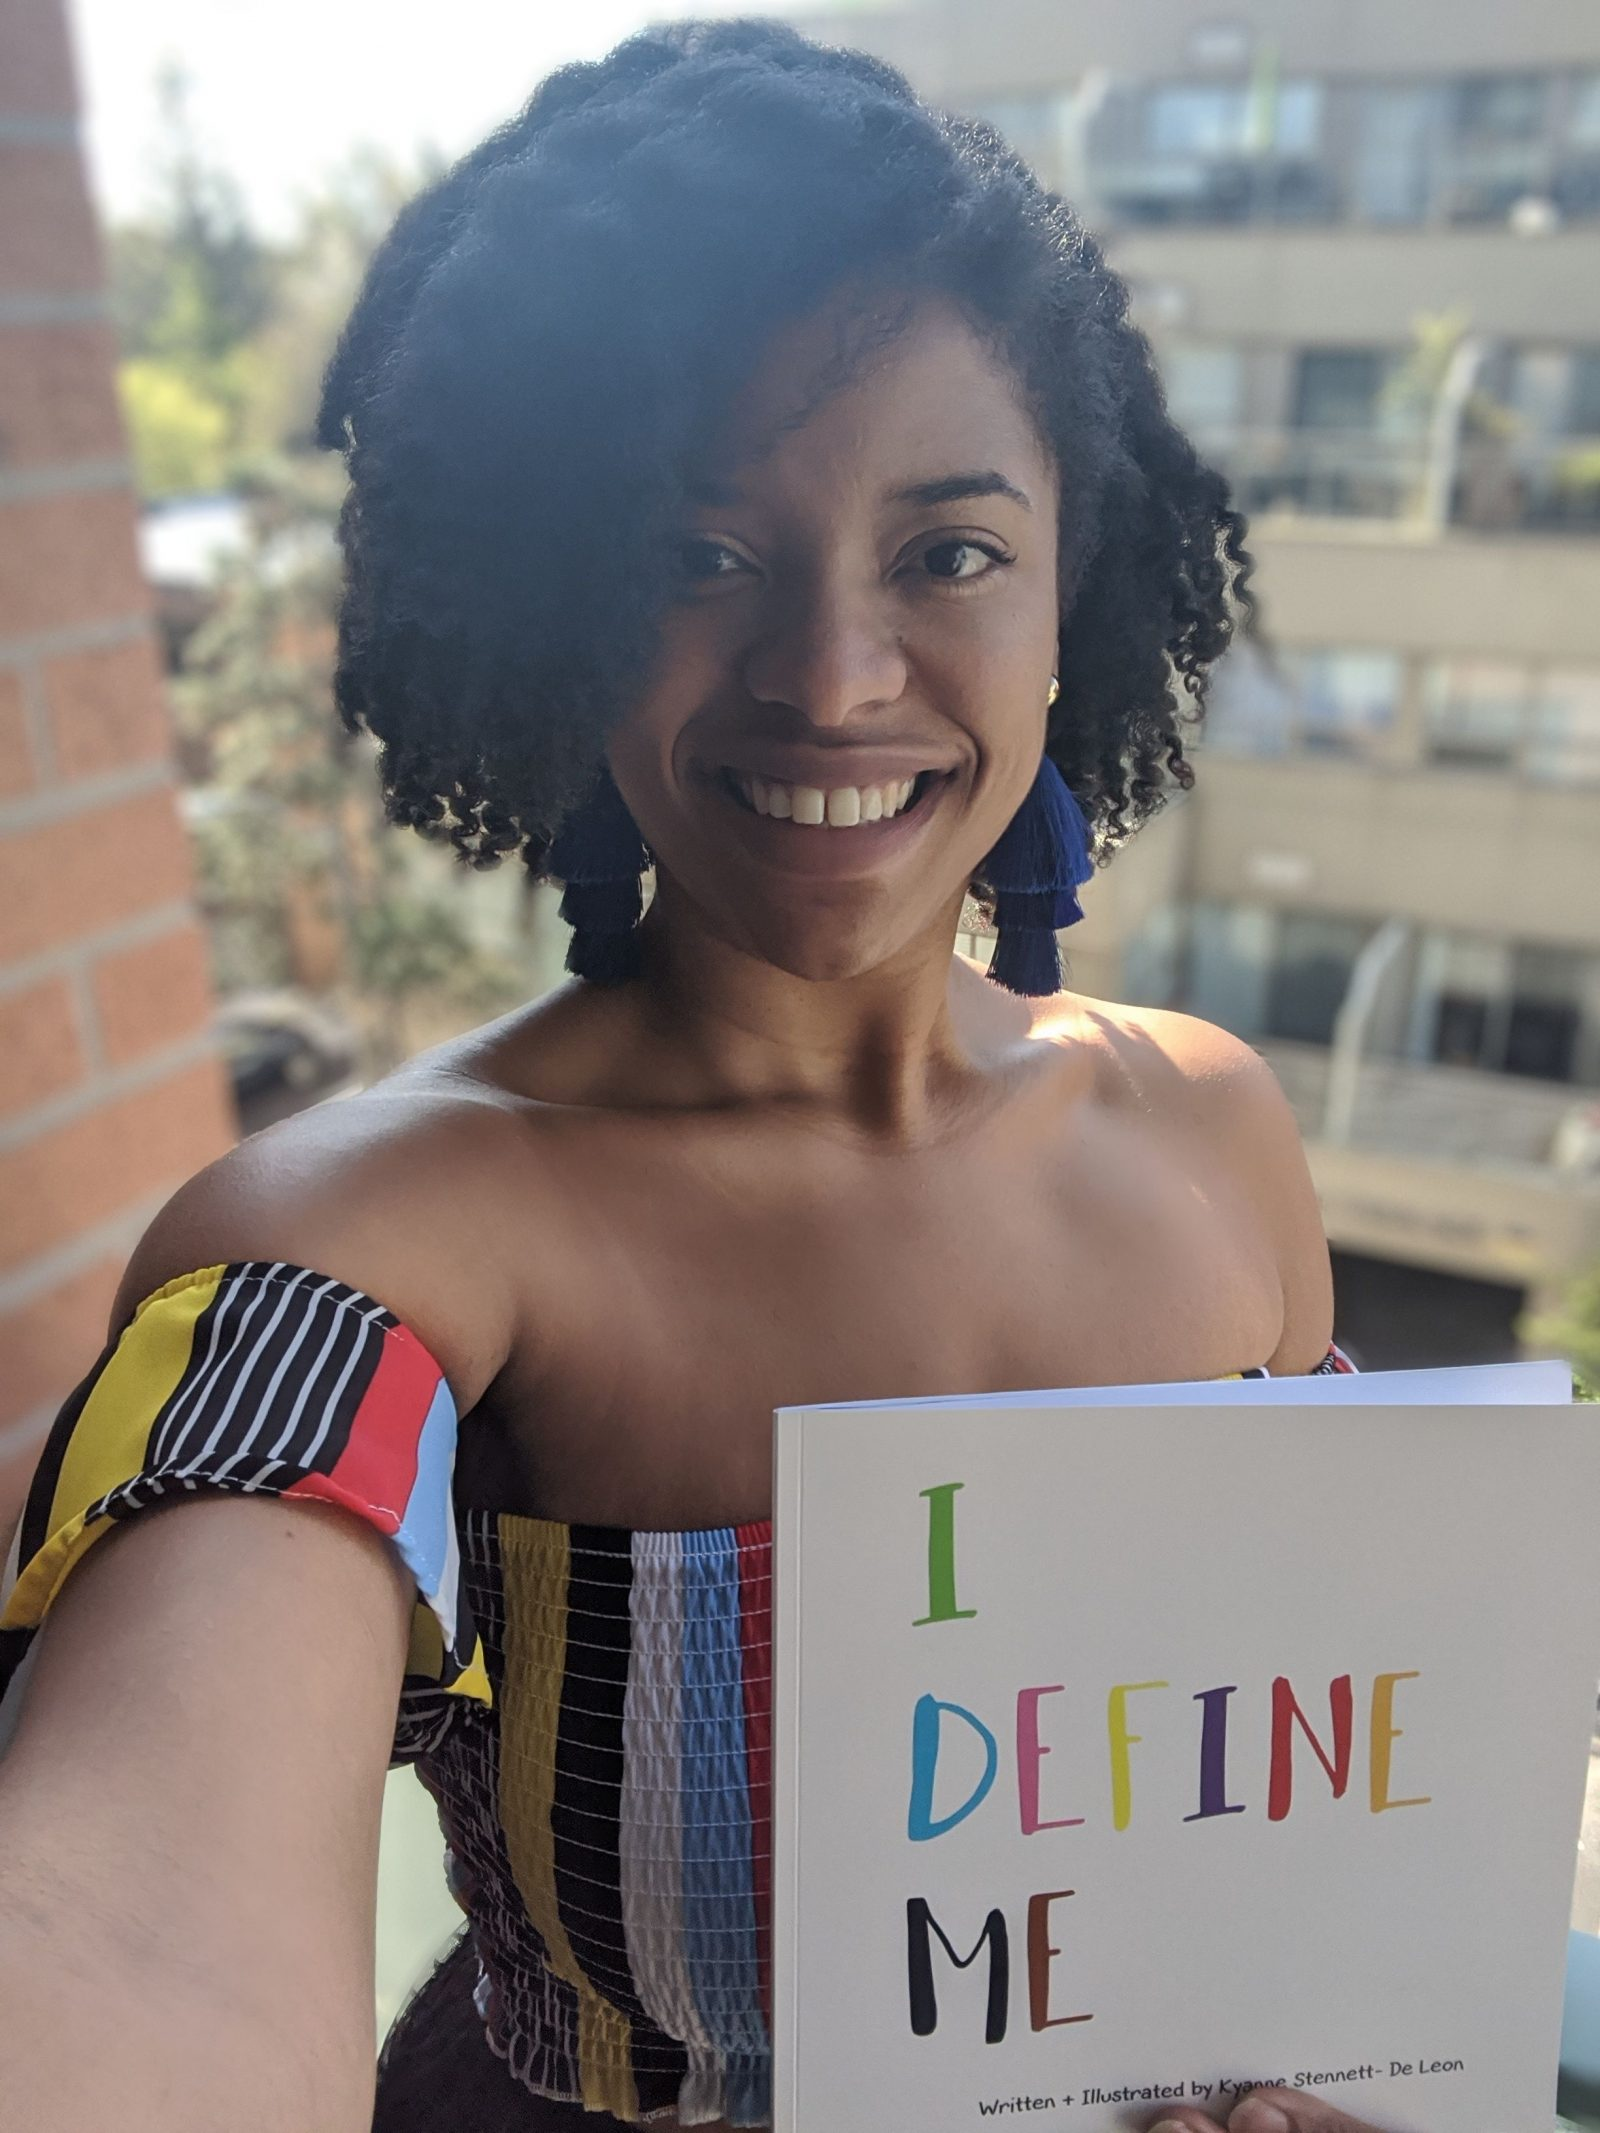 selfie of Kyanne on balcony, wearing stripy top and holding up copy of 'I define me' children's book